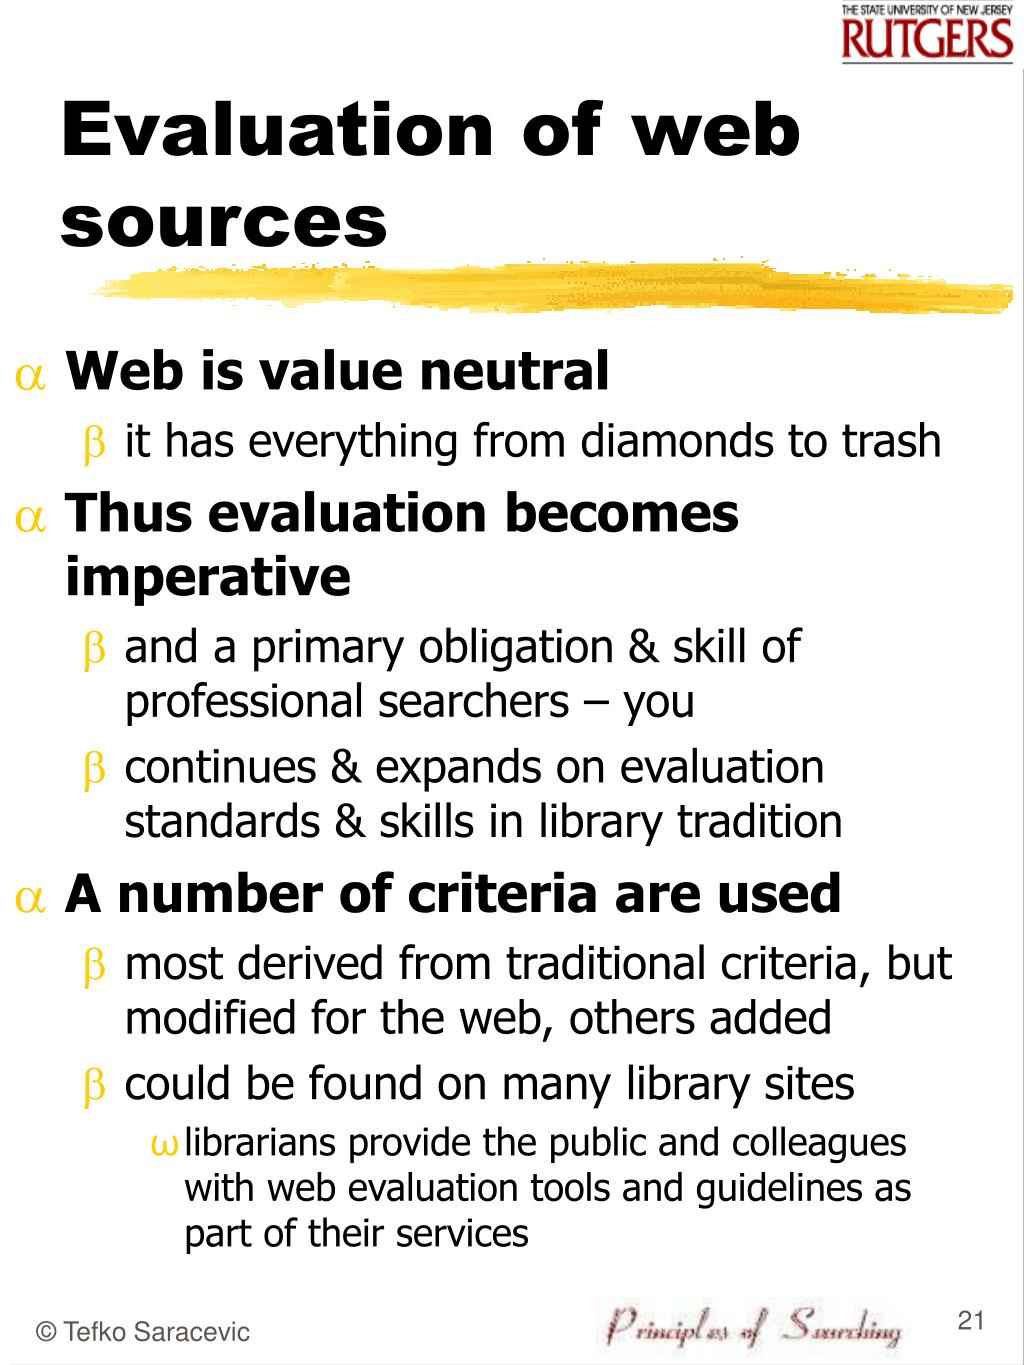 Evaluation of web sources